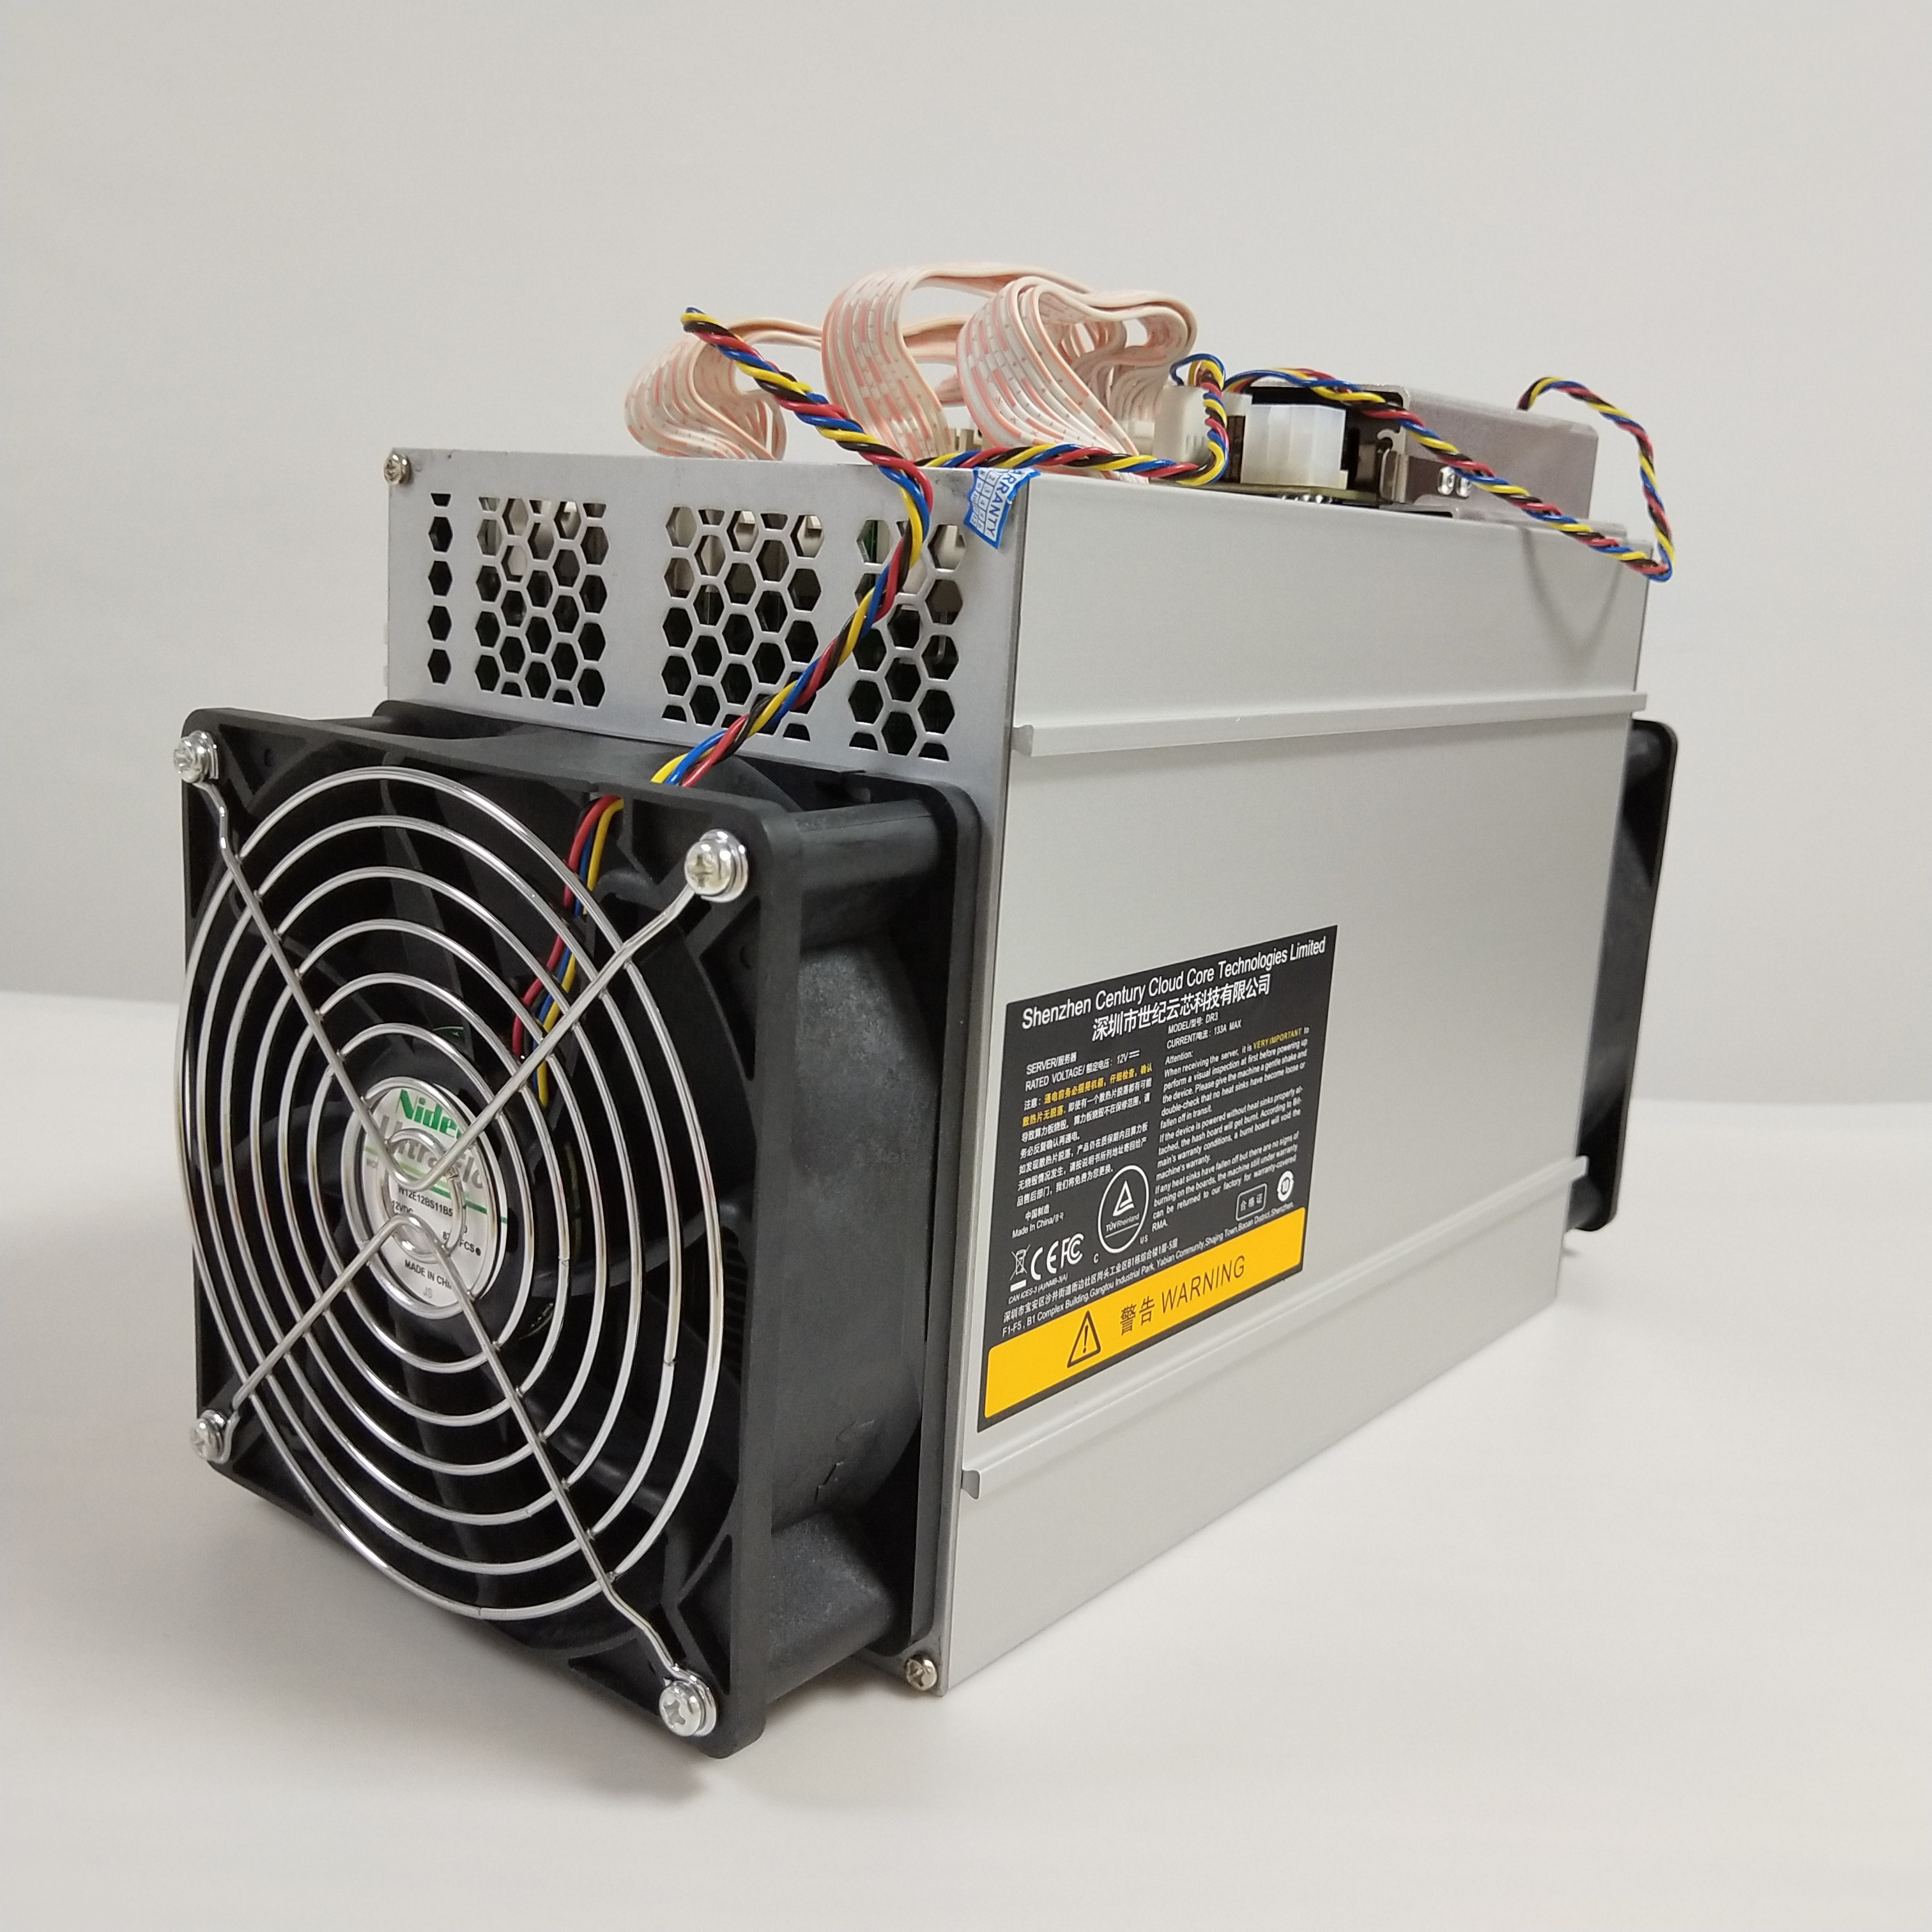 2018_Antminer_DR3_7_8TH_s_1410w.jpg